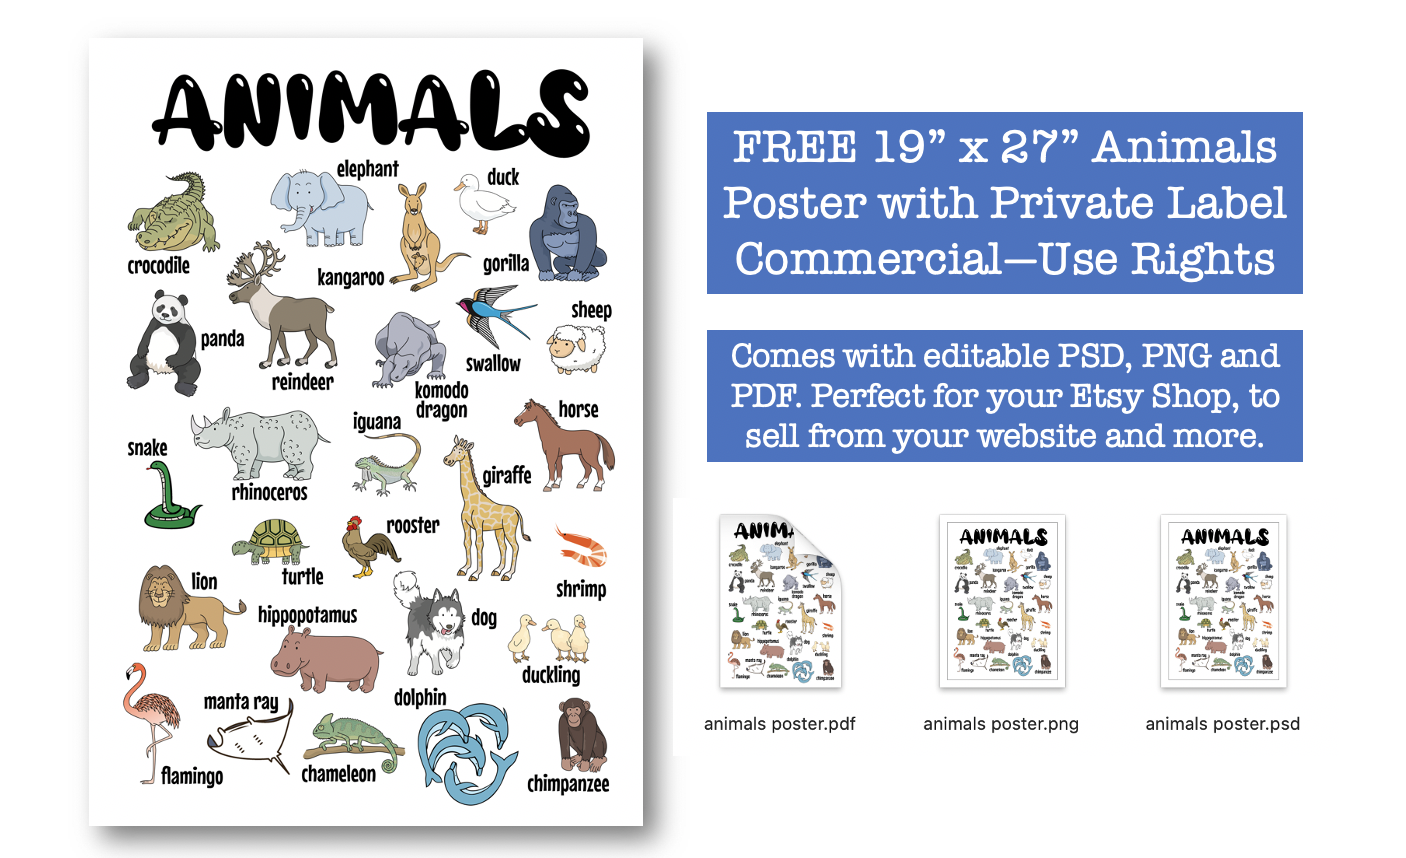 Free Animals Poster with PLR Rights